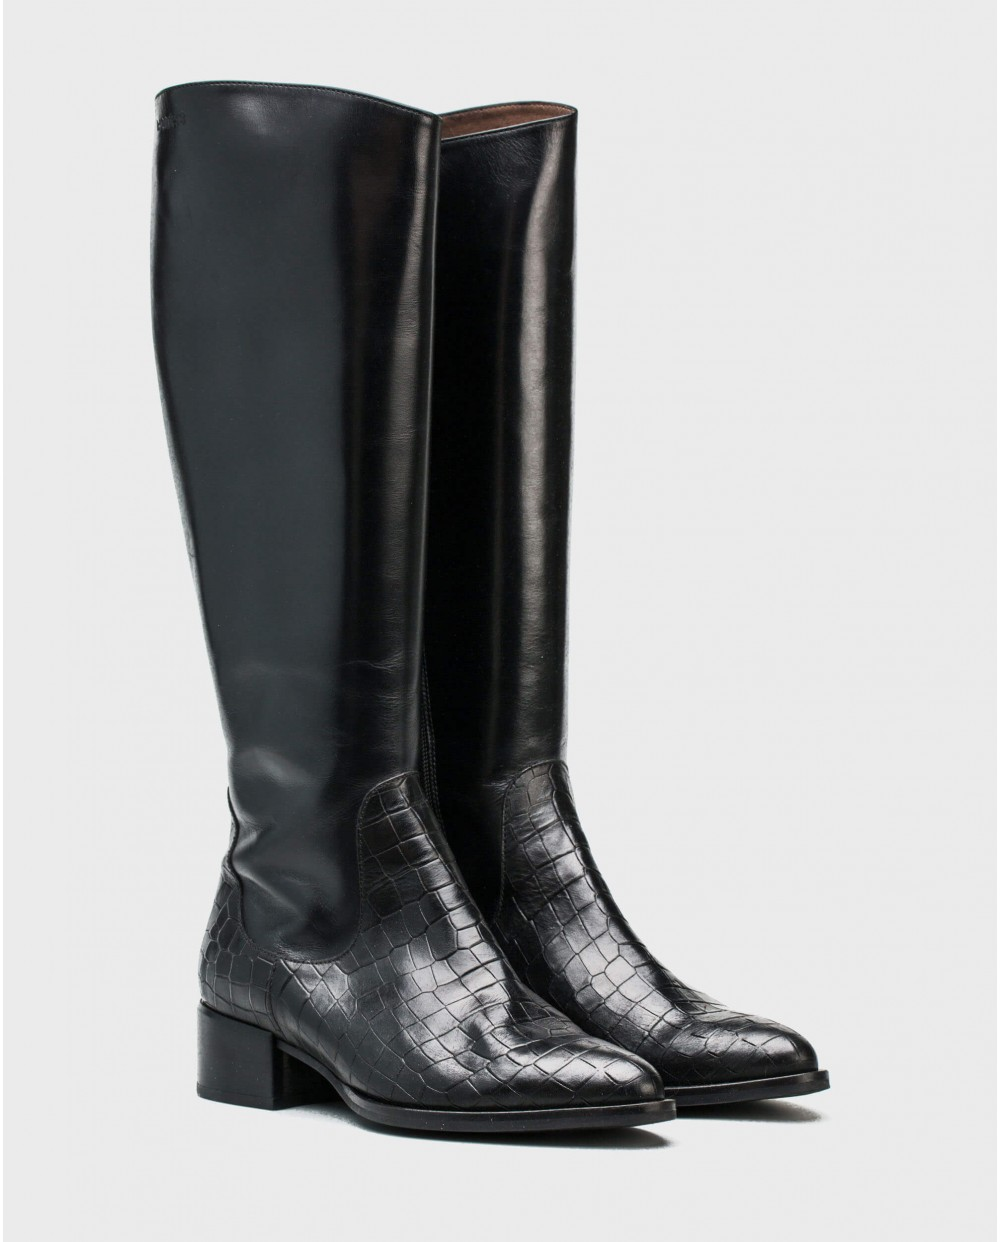 Wonders-Boots-Boots in a combination of mock/croc leather